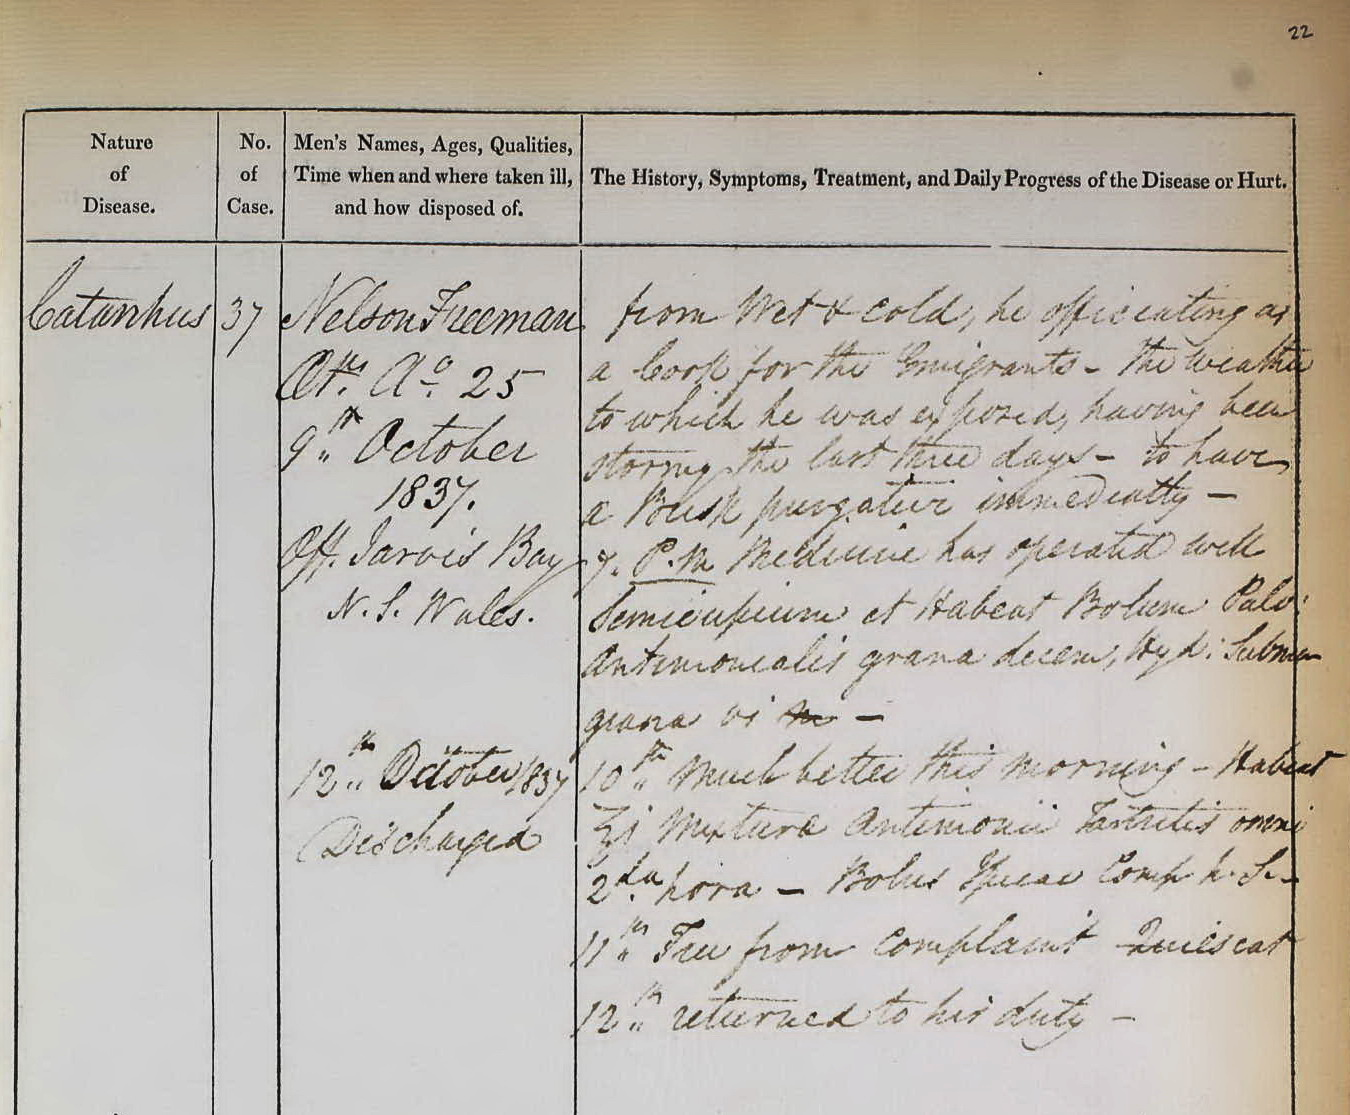 Section of Royal Navy medical records: ship Augusta Jessie 1837